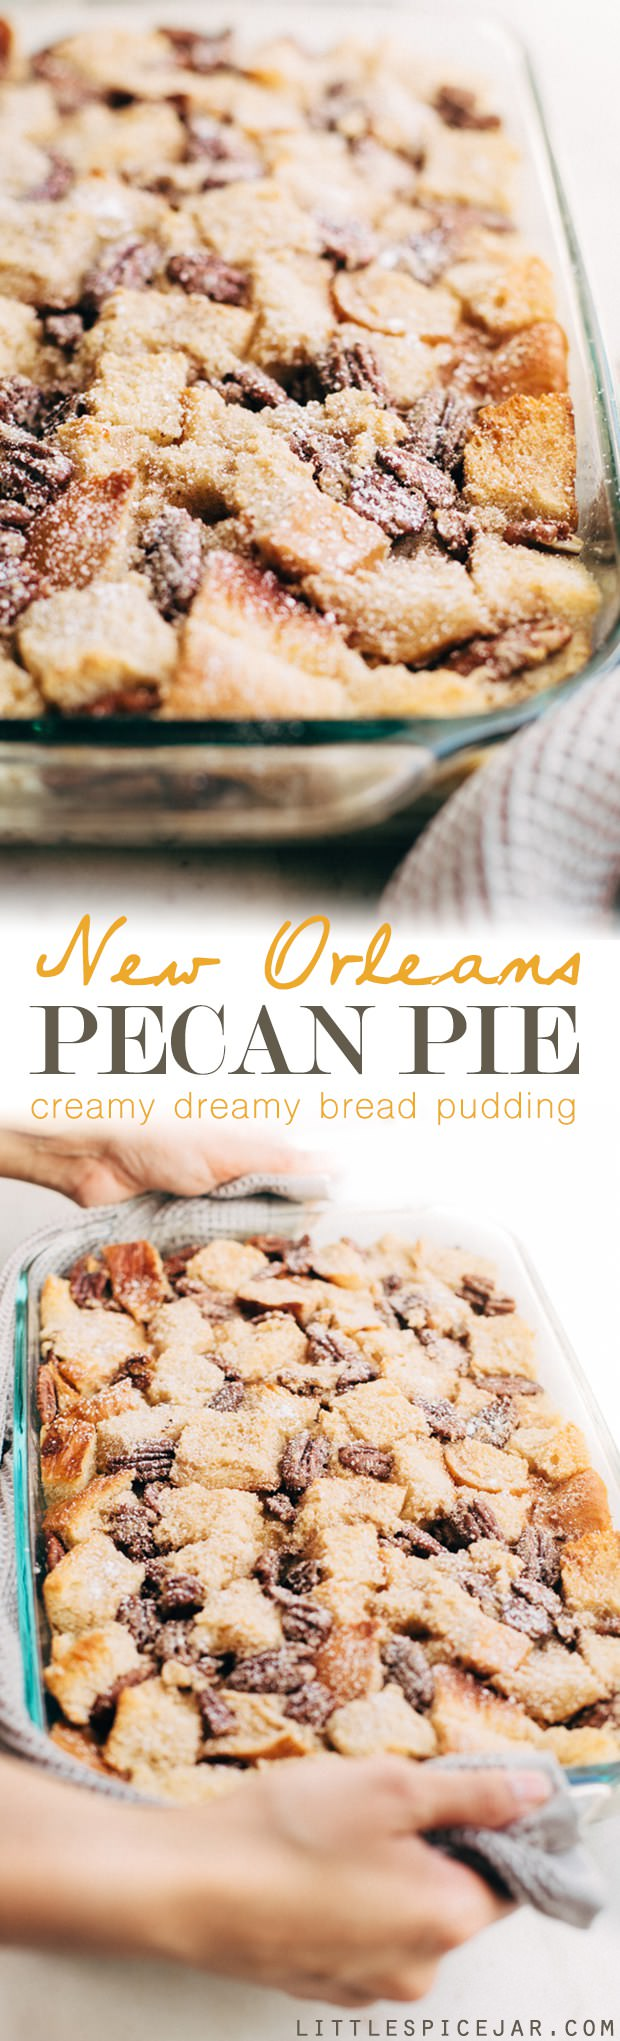 A perfect dessert to serve during the holidays with the gooey pecan pie filling and the tender custard-- It tastes delicious! Check out the recipe.